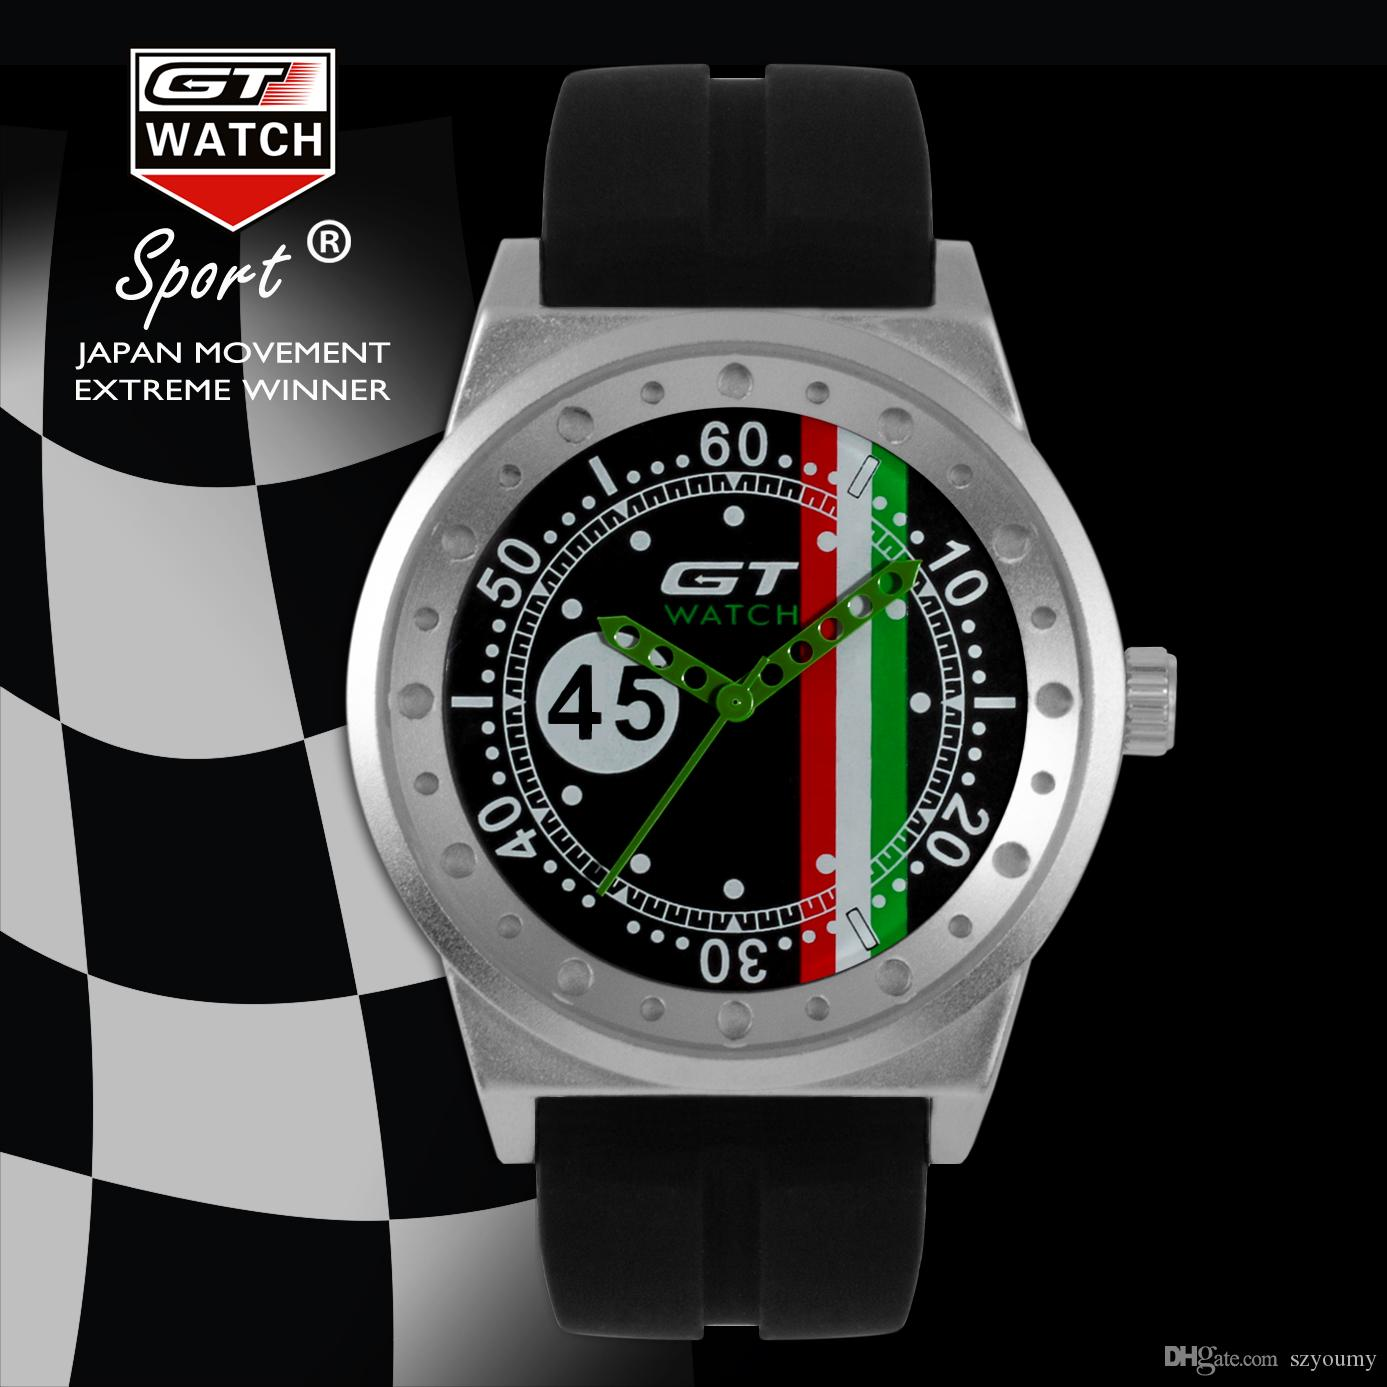 GT WATCH Extreme Driver GT Racing Sports Men Militray Pilot Relojes Silicone Strap Quartz Wristwatch Fashion Trend Watch